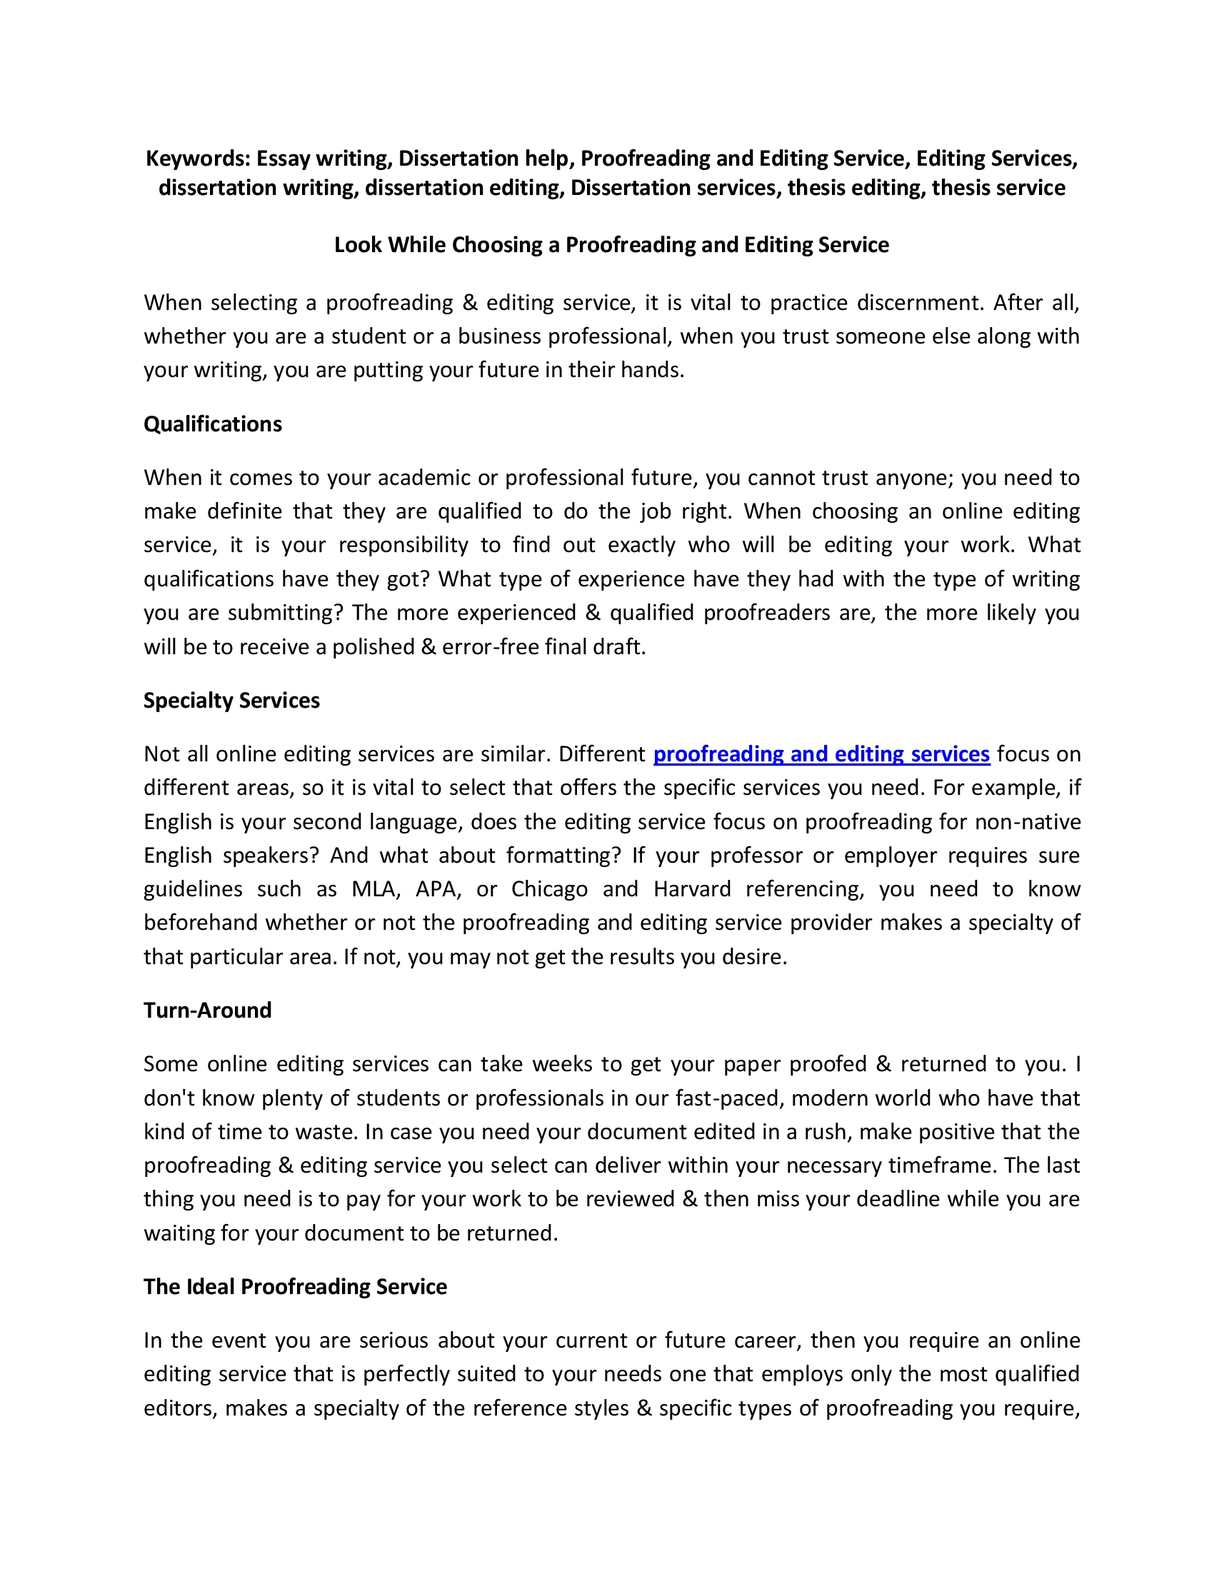 Calaméo - Look While Choosing a Proofreading and Editing Service